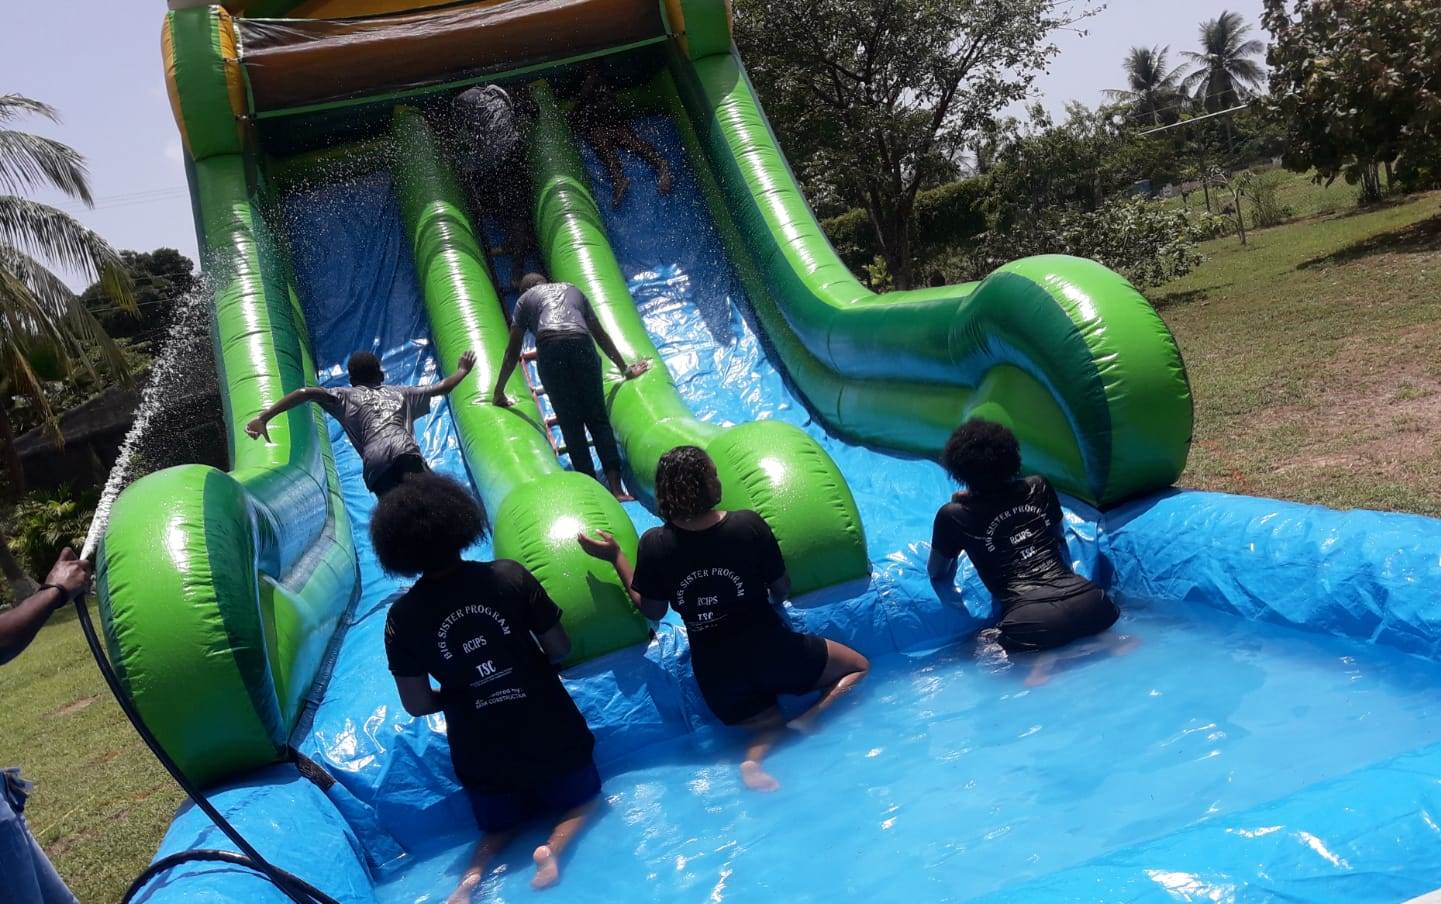 A waterslide was part of the day's activities.